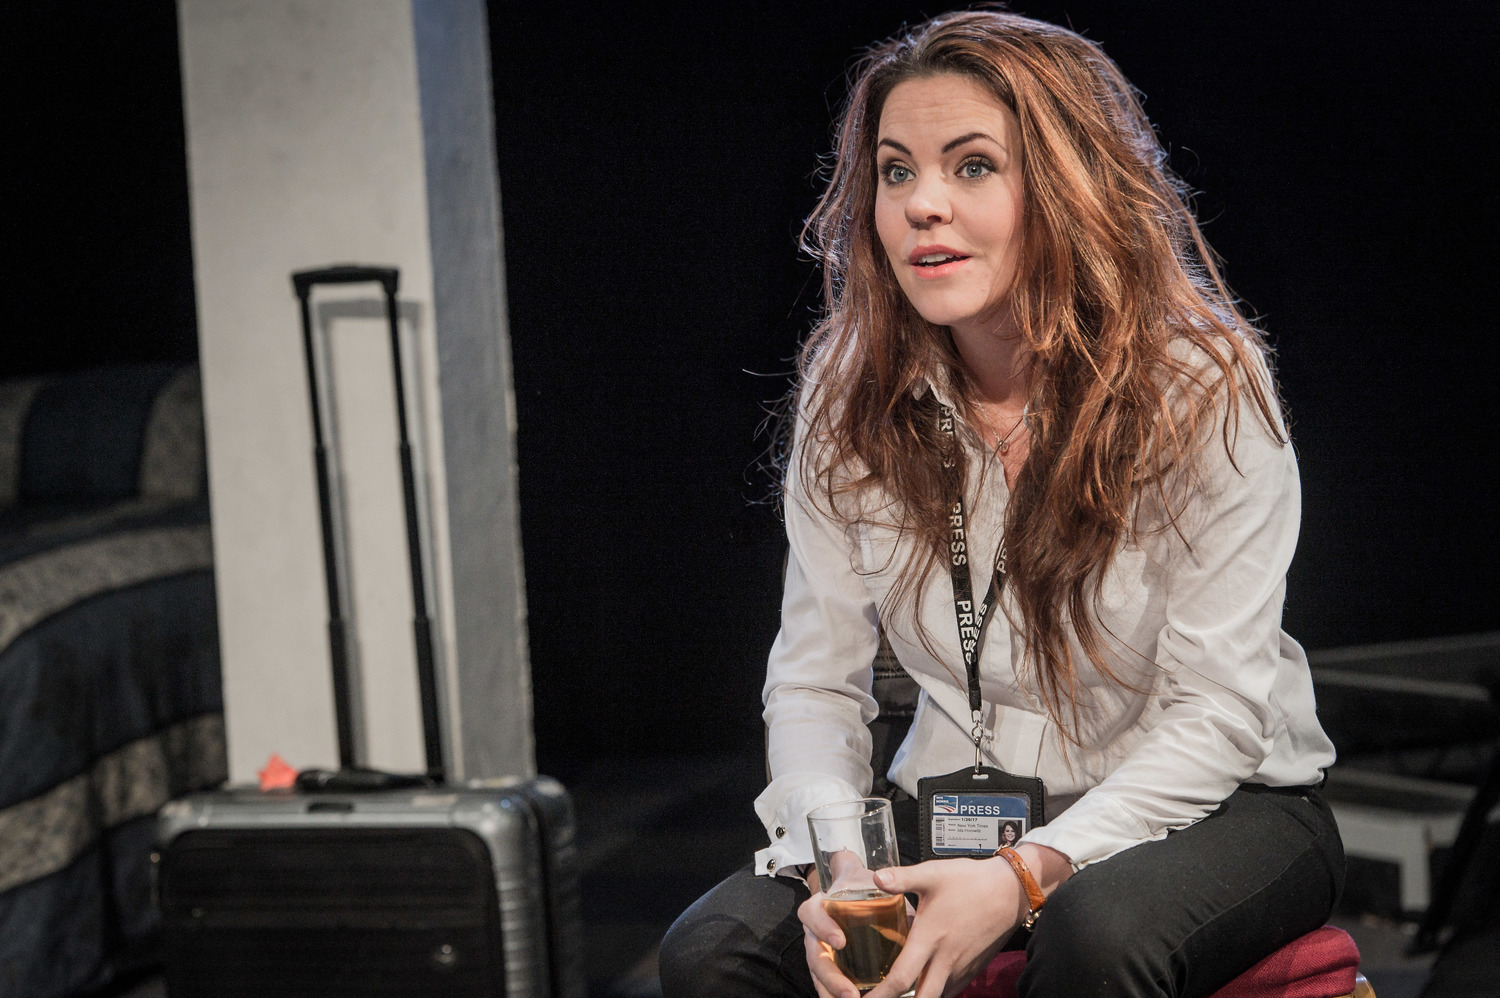 Rachel Tucker in Farragut North, Southwark Playhouse Off West End, composer - Jude Obermüller (photo by Robert Workman)